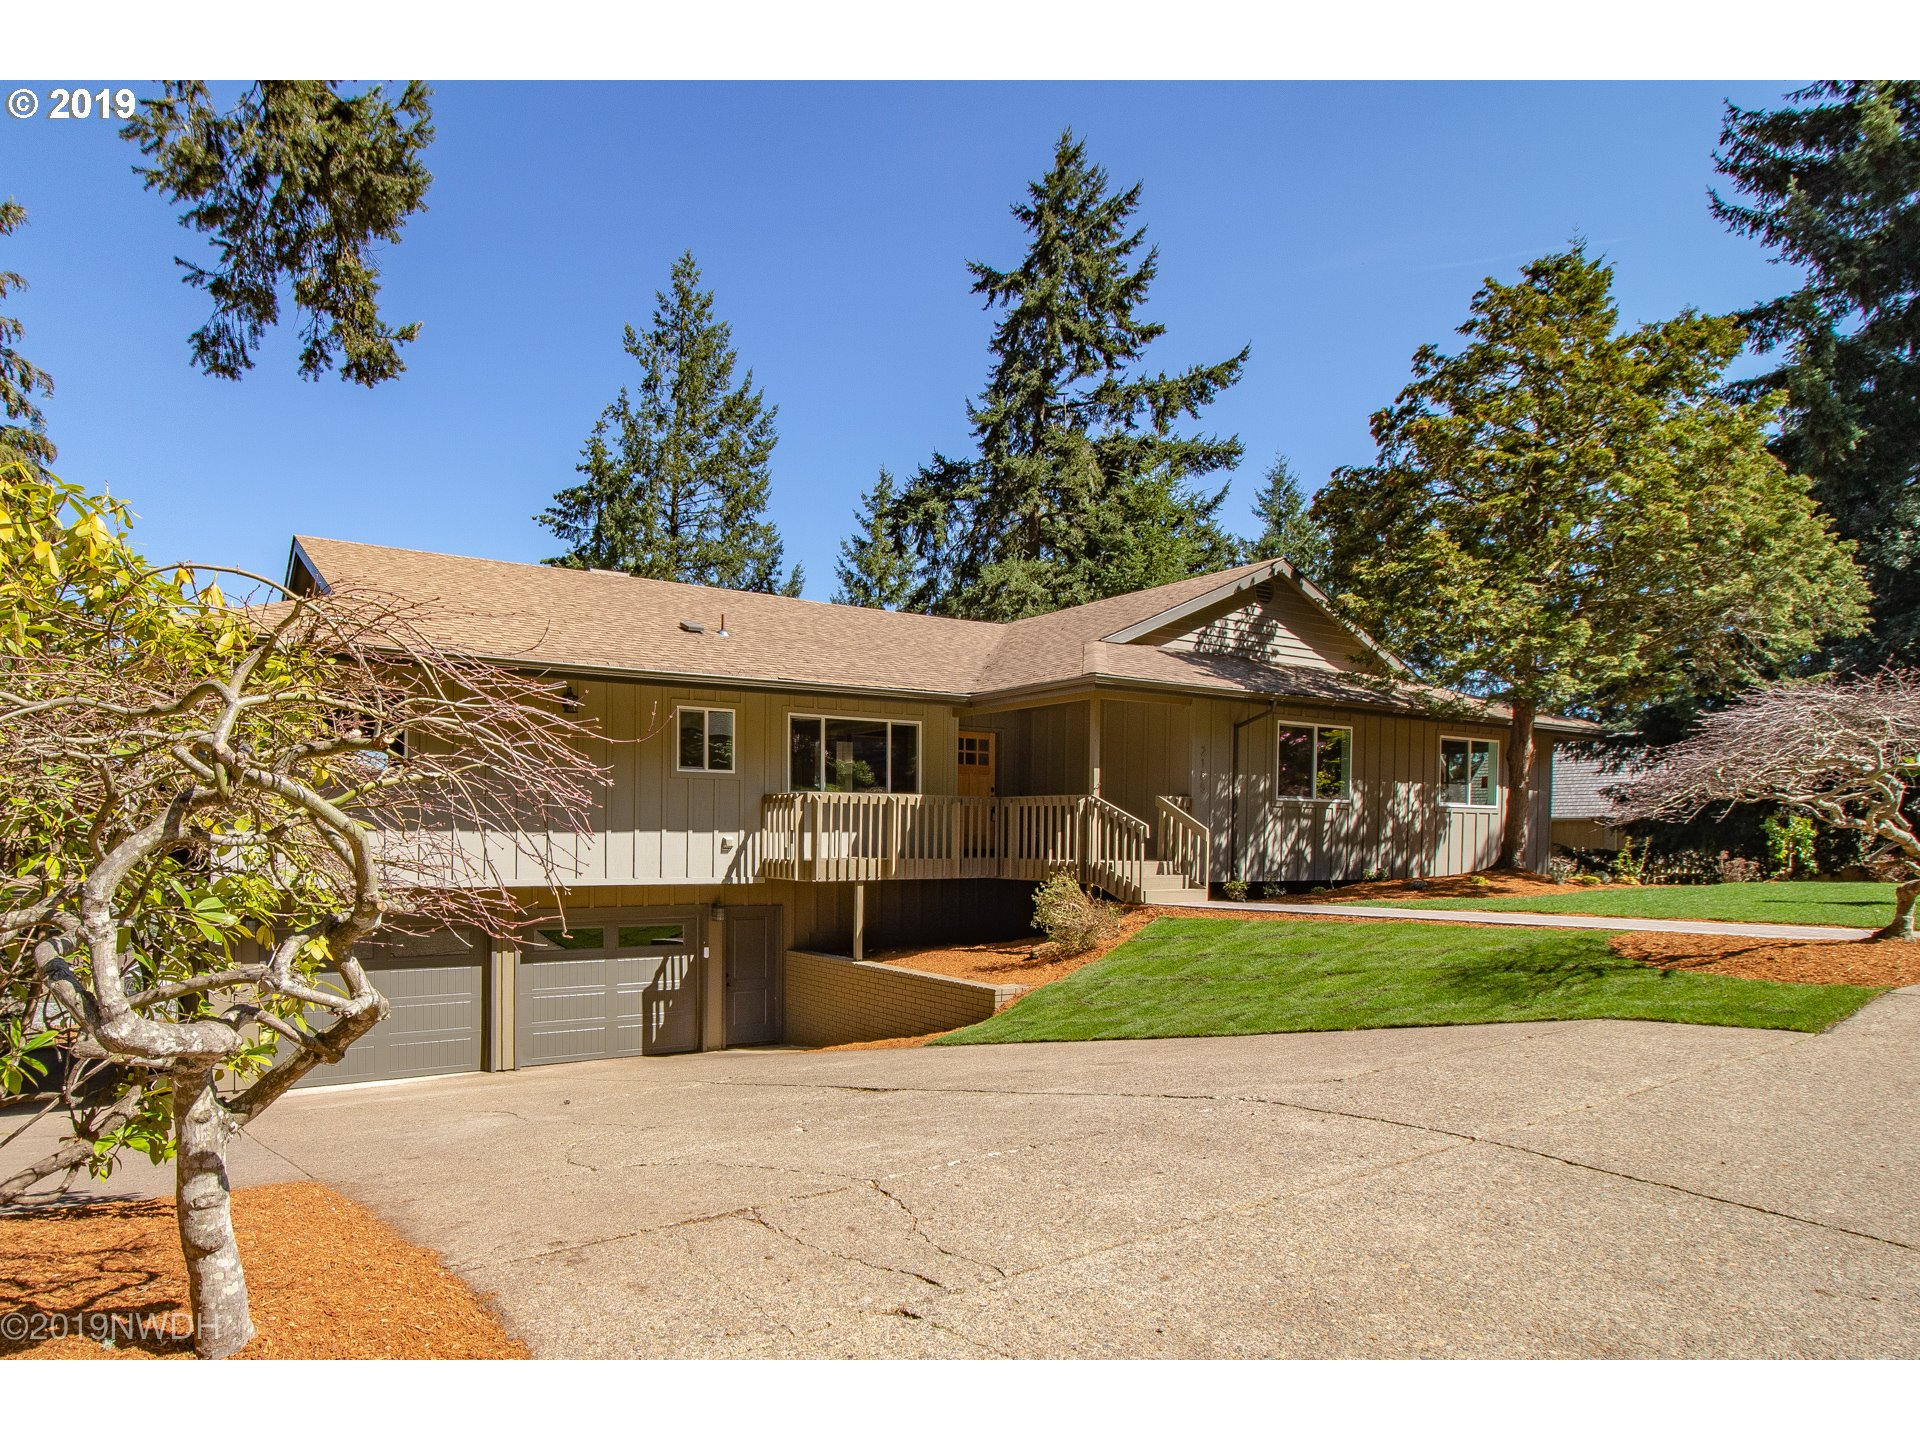 2185 W 29TH AVE, Eugene OR 97405